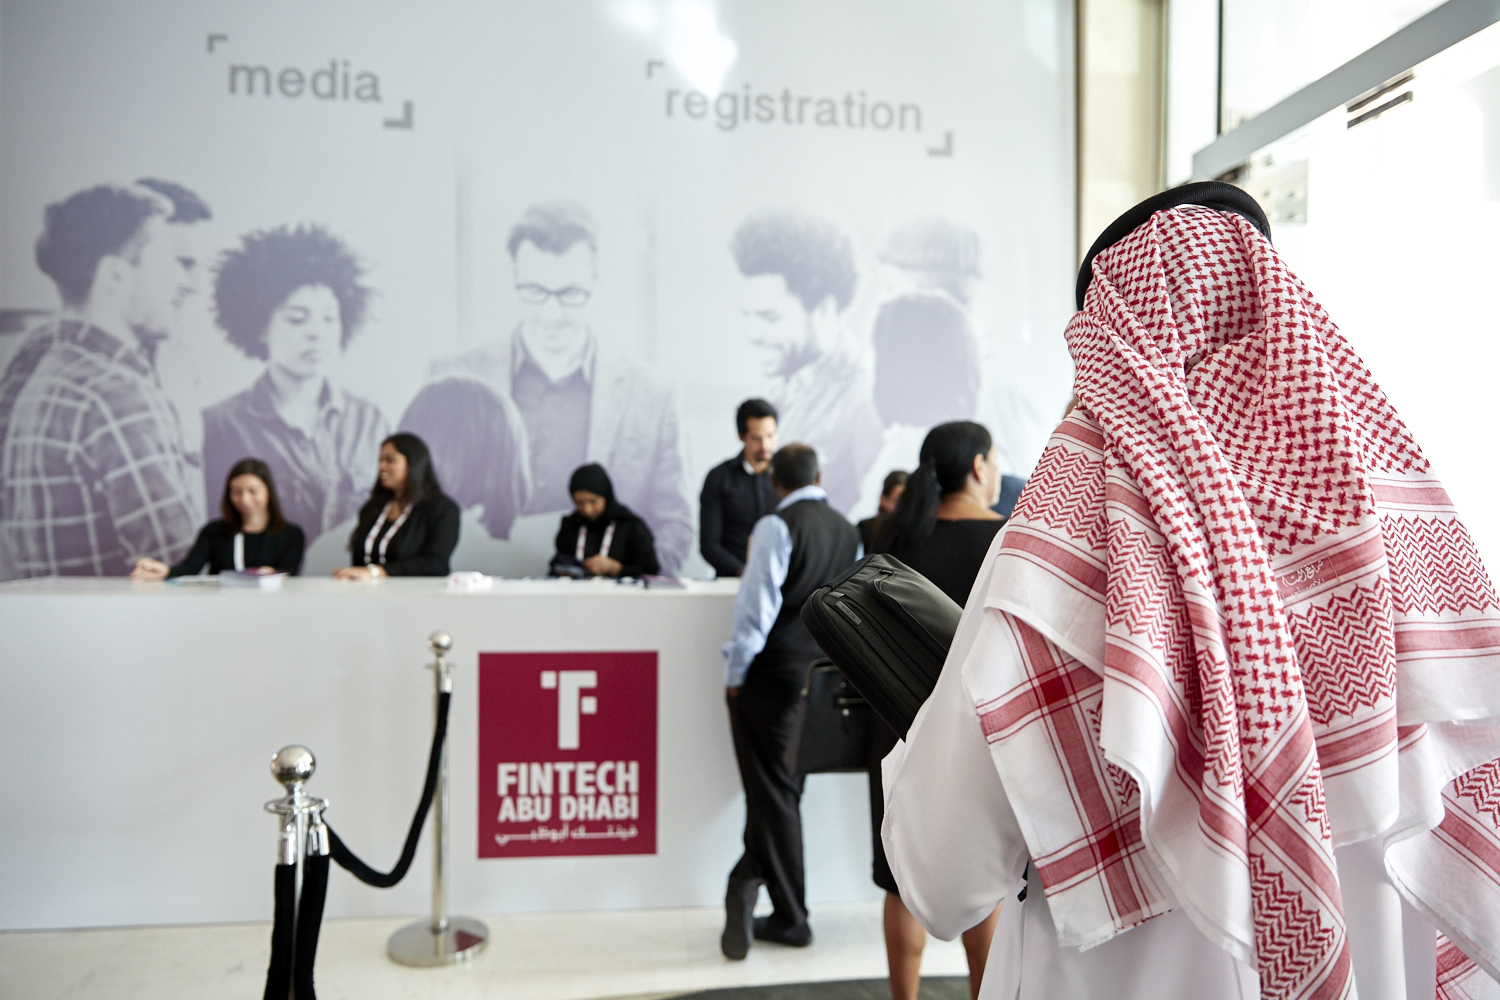 fintech-abu-dhabi-Markettiers - The Broadcast Specialists